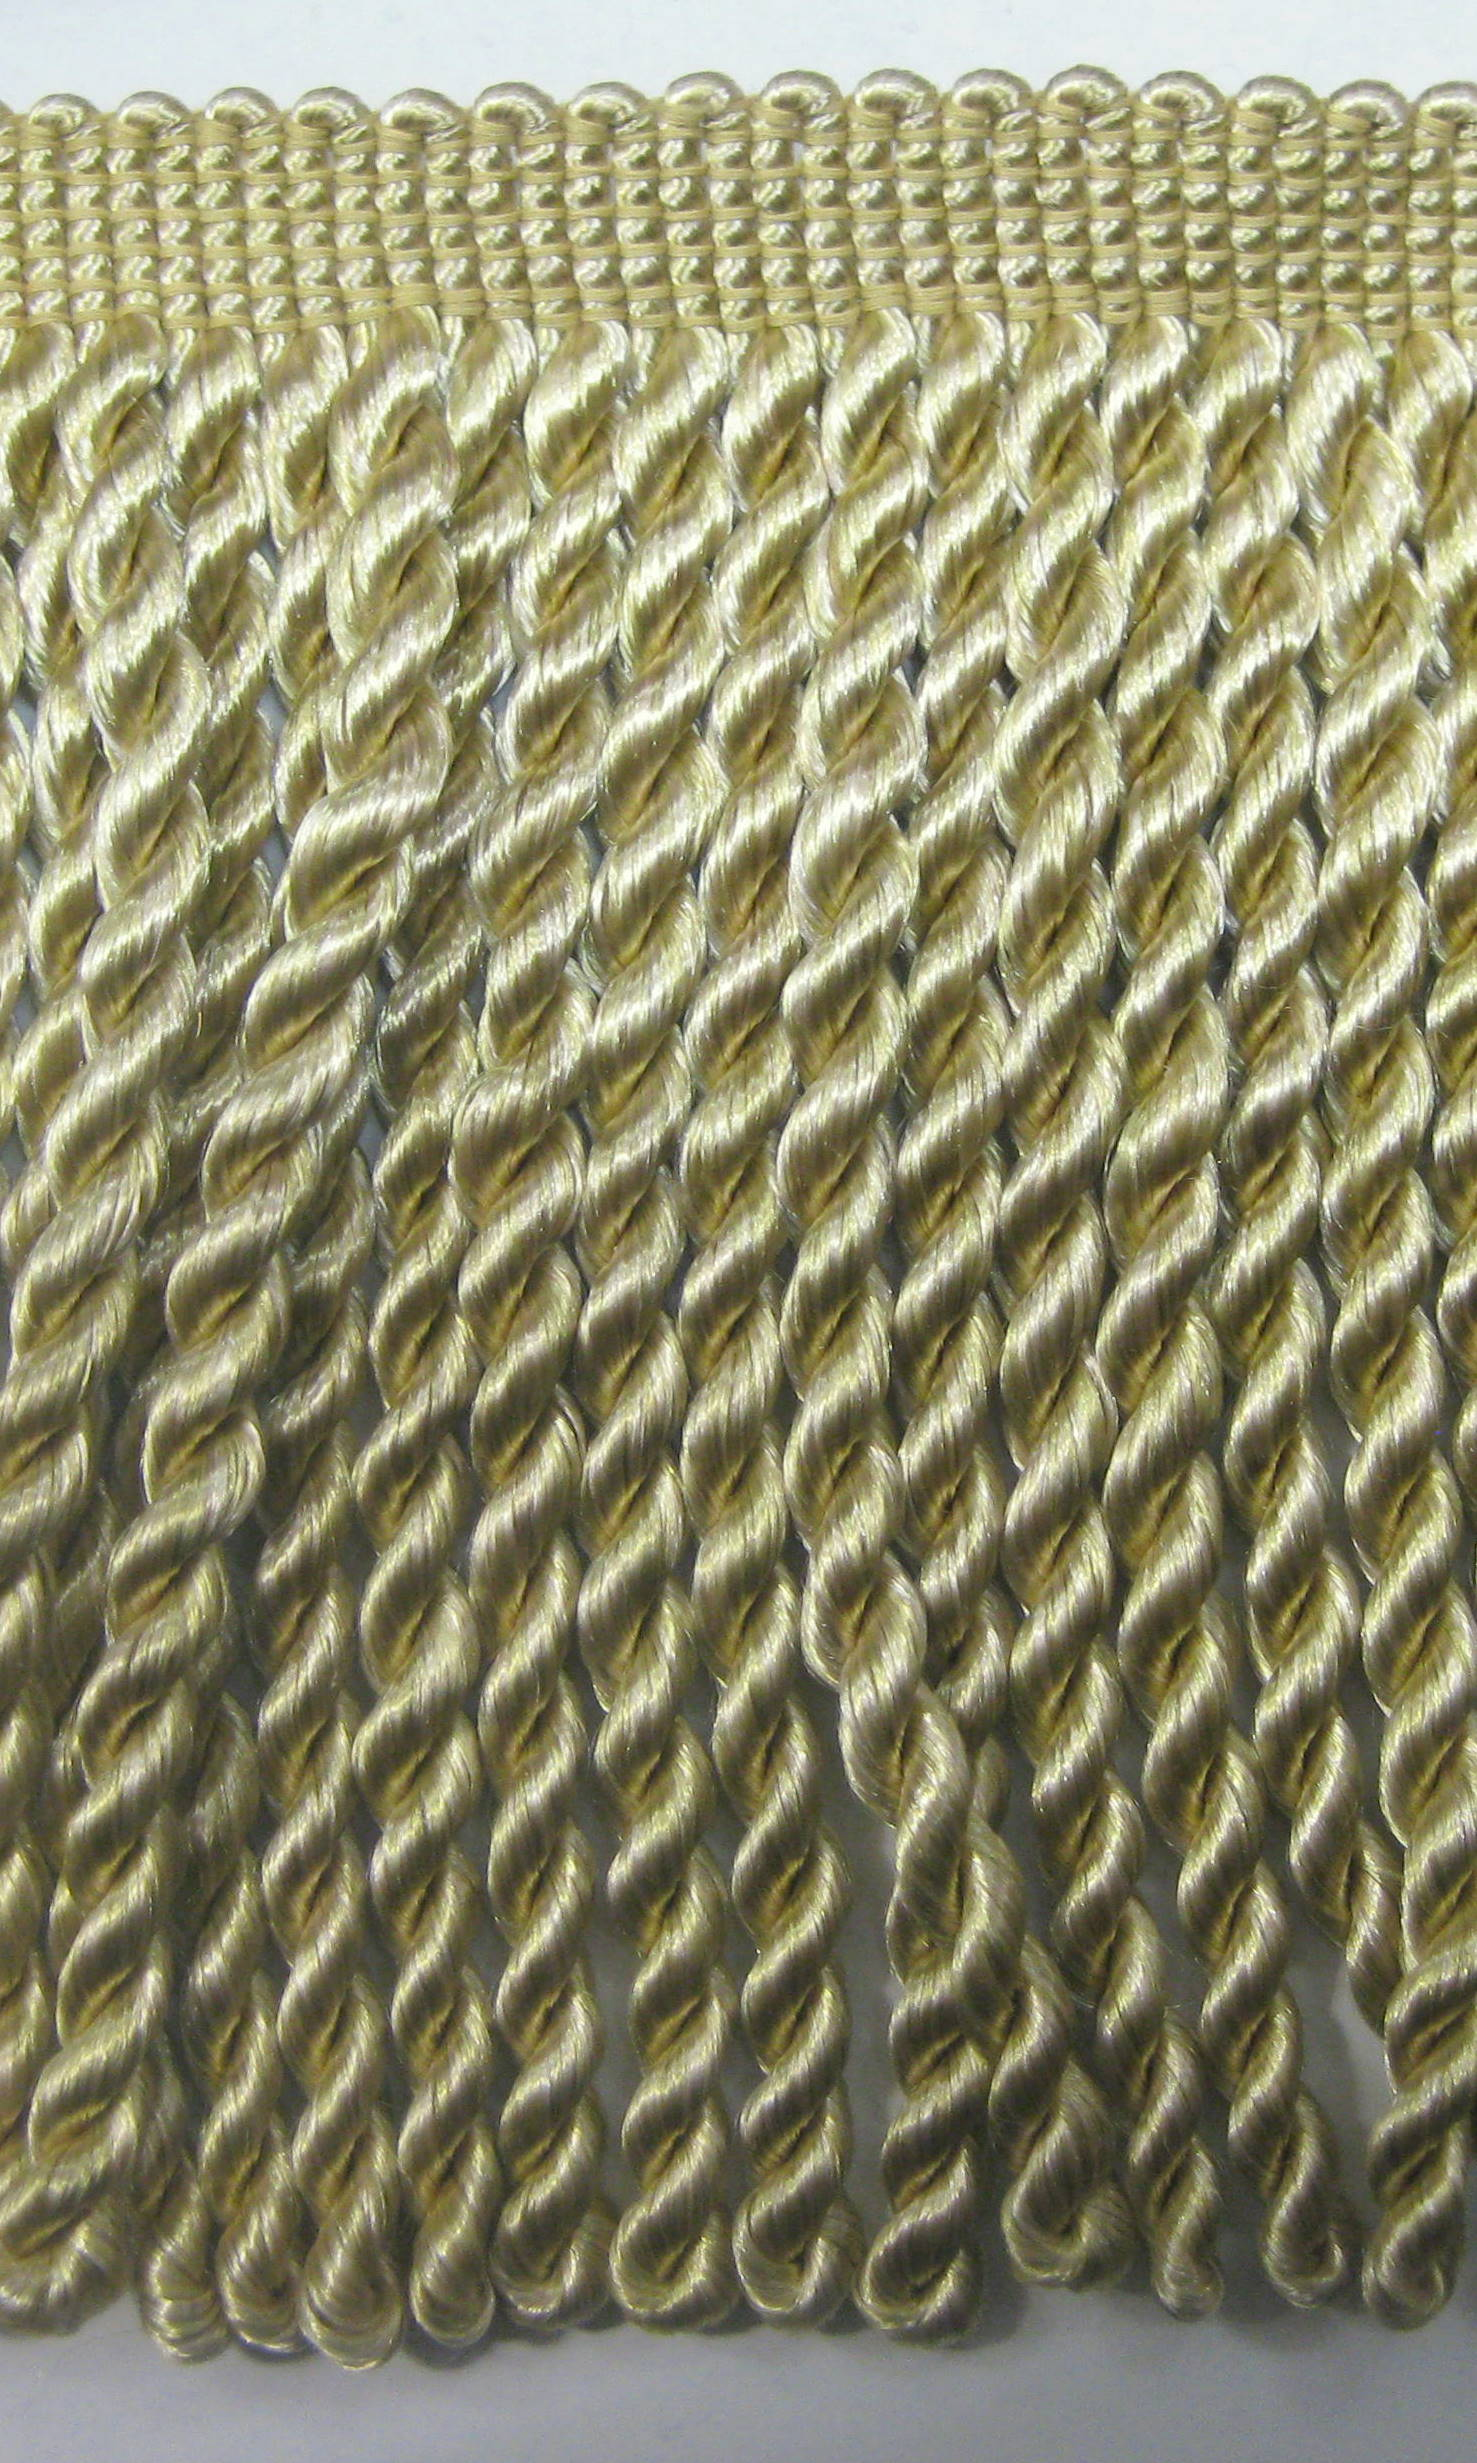 BULLION FRINGE COLOR 87/17